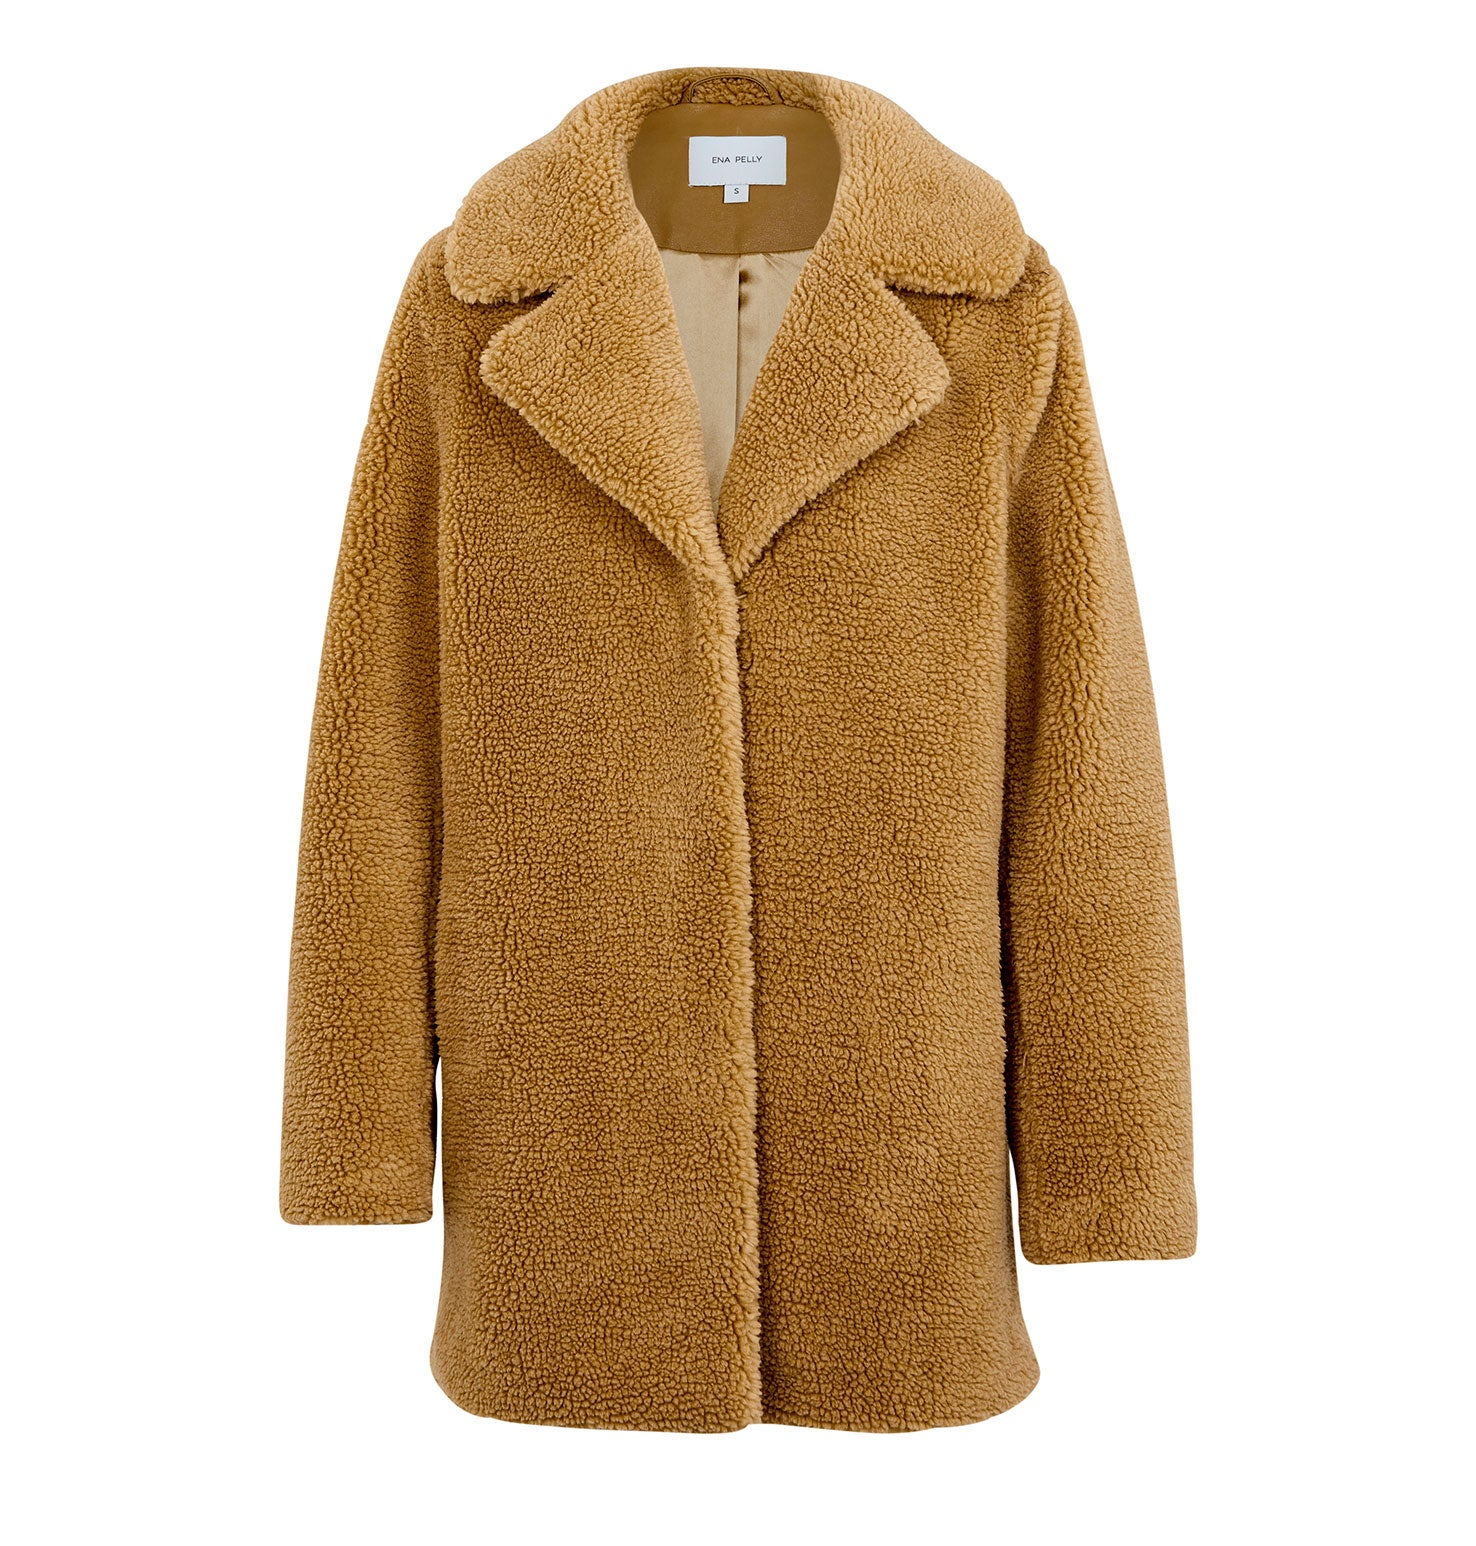 Minimalist Faux Fur Jacket - Teddy